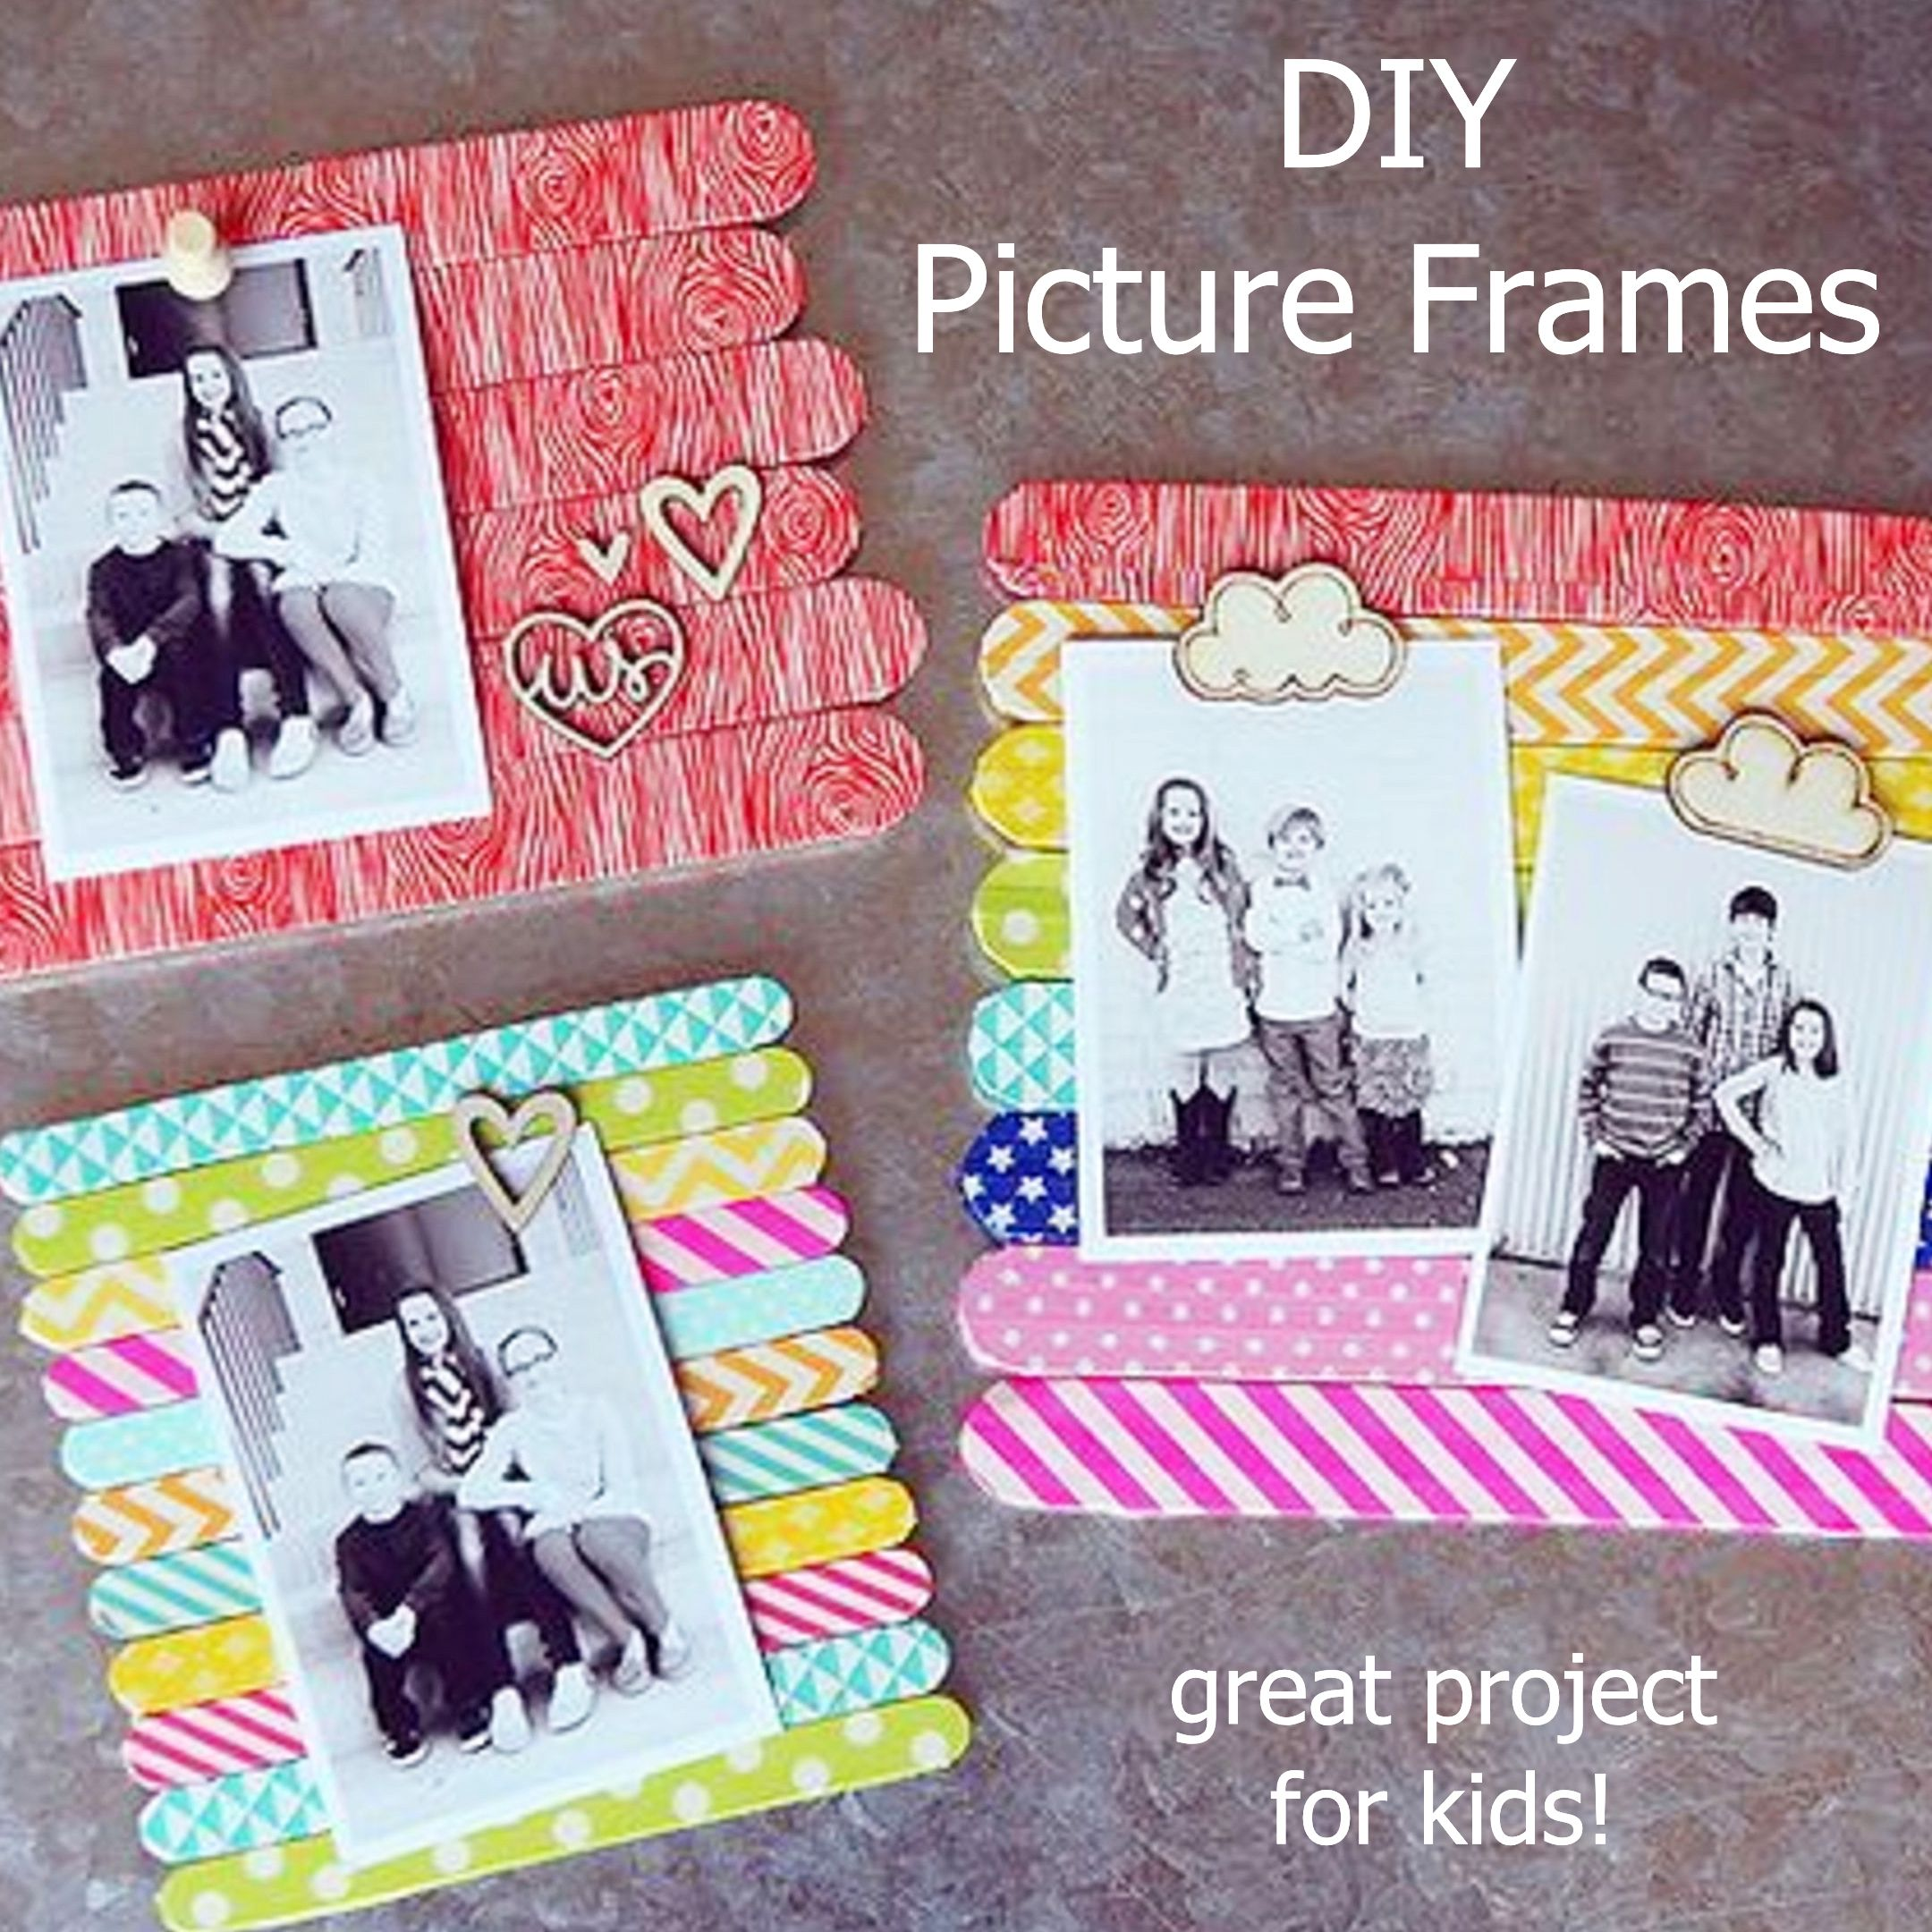 Easy DIY Gifts For Mom From Kids Diy gifts for mom, Diy